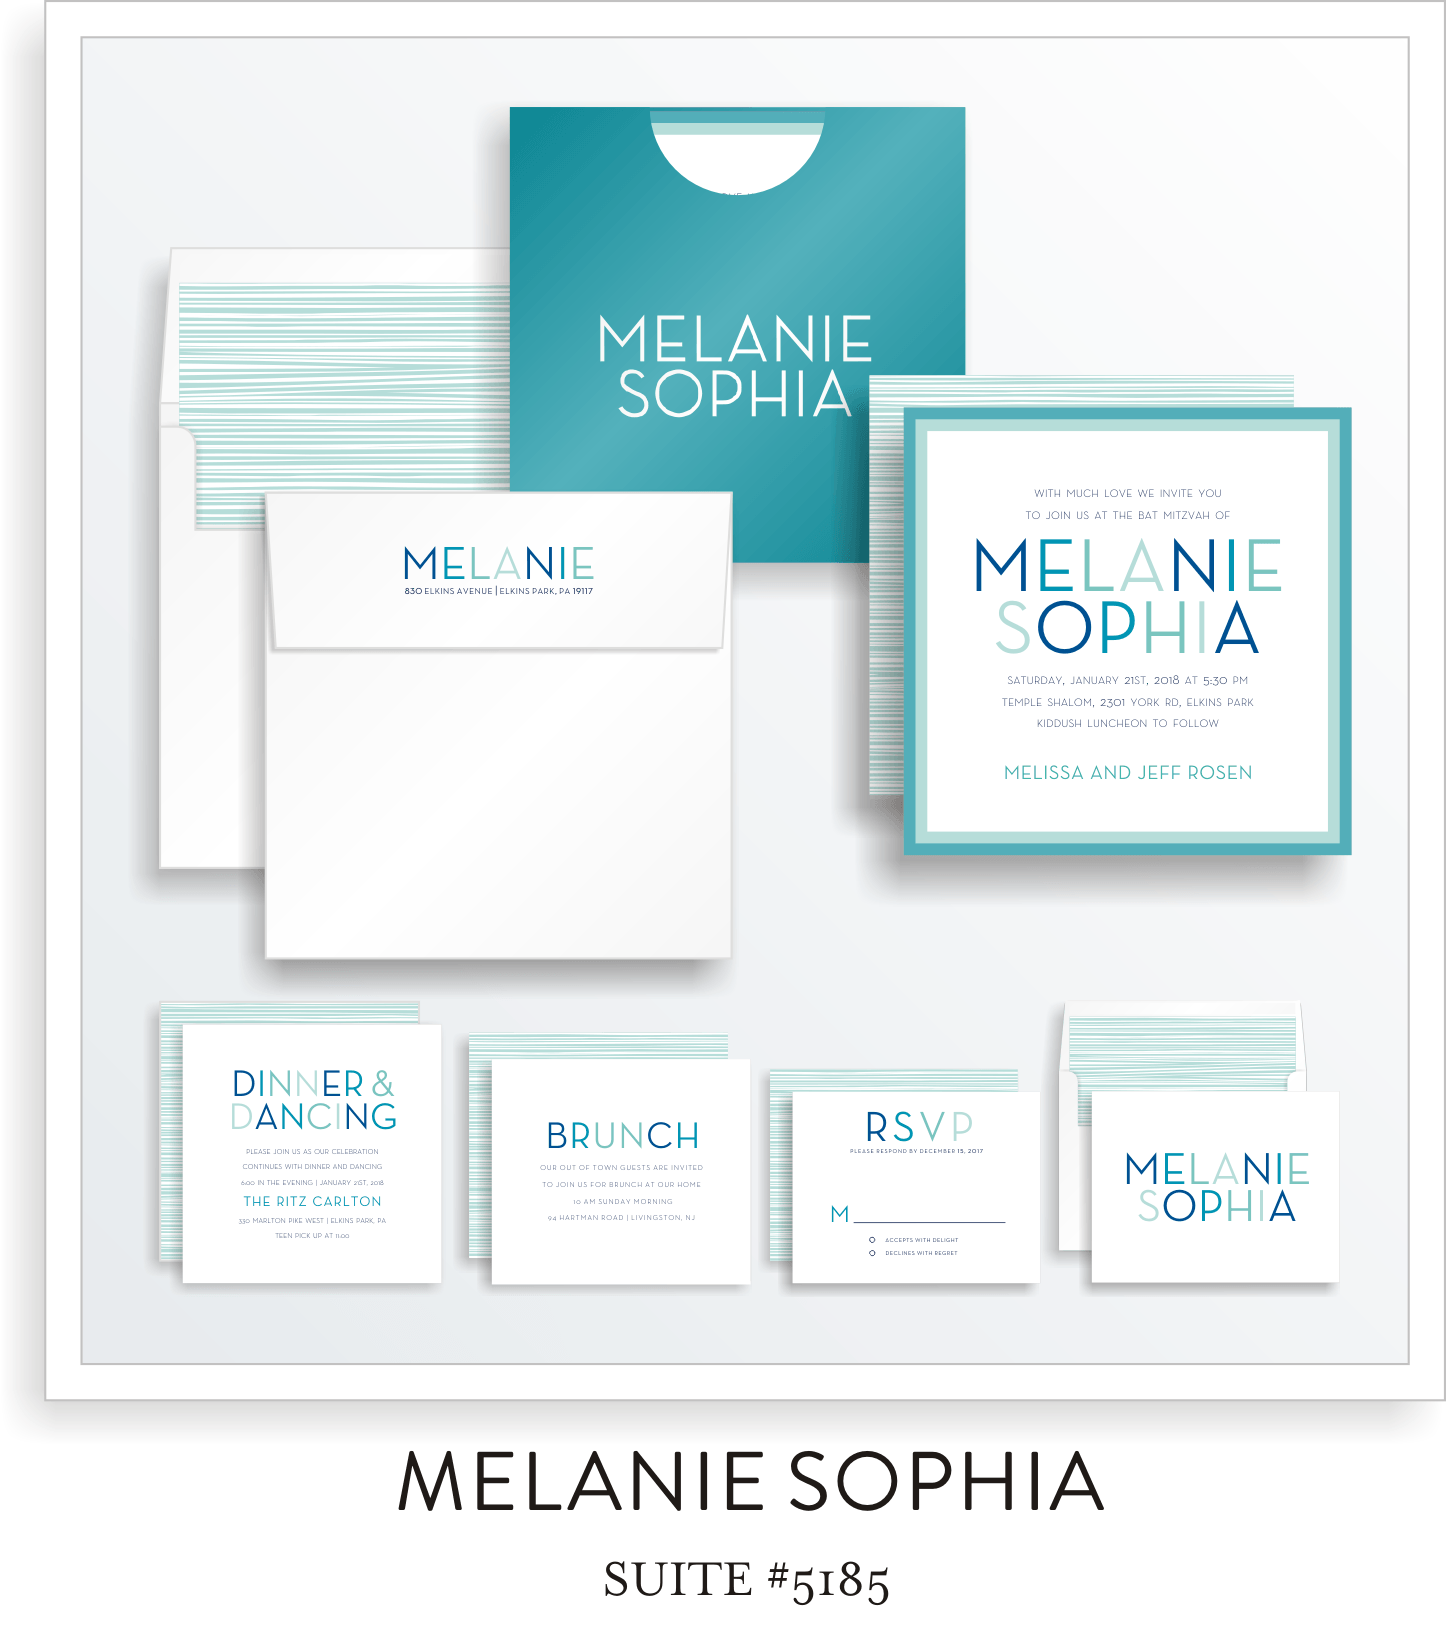 Bat Mitzvah Invitation Suite 5185 - Melanie Sophia